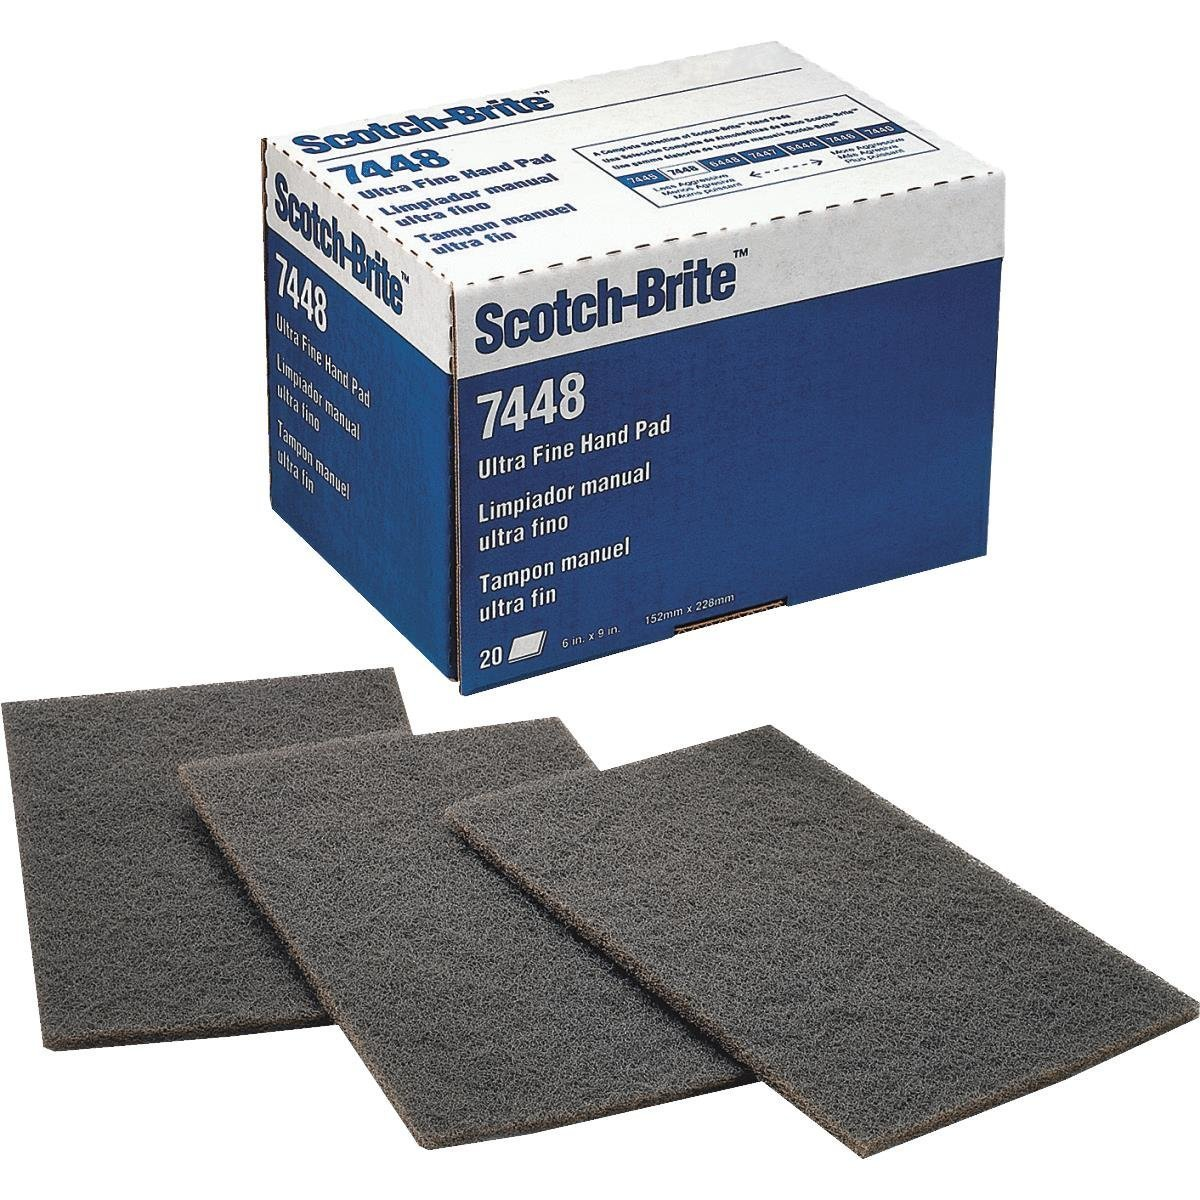 3M Scotch-Brite Ultra Fine Hand Pad 7448-20 Count 8119Pt6JXgL